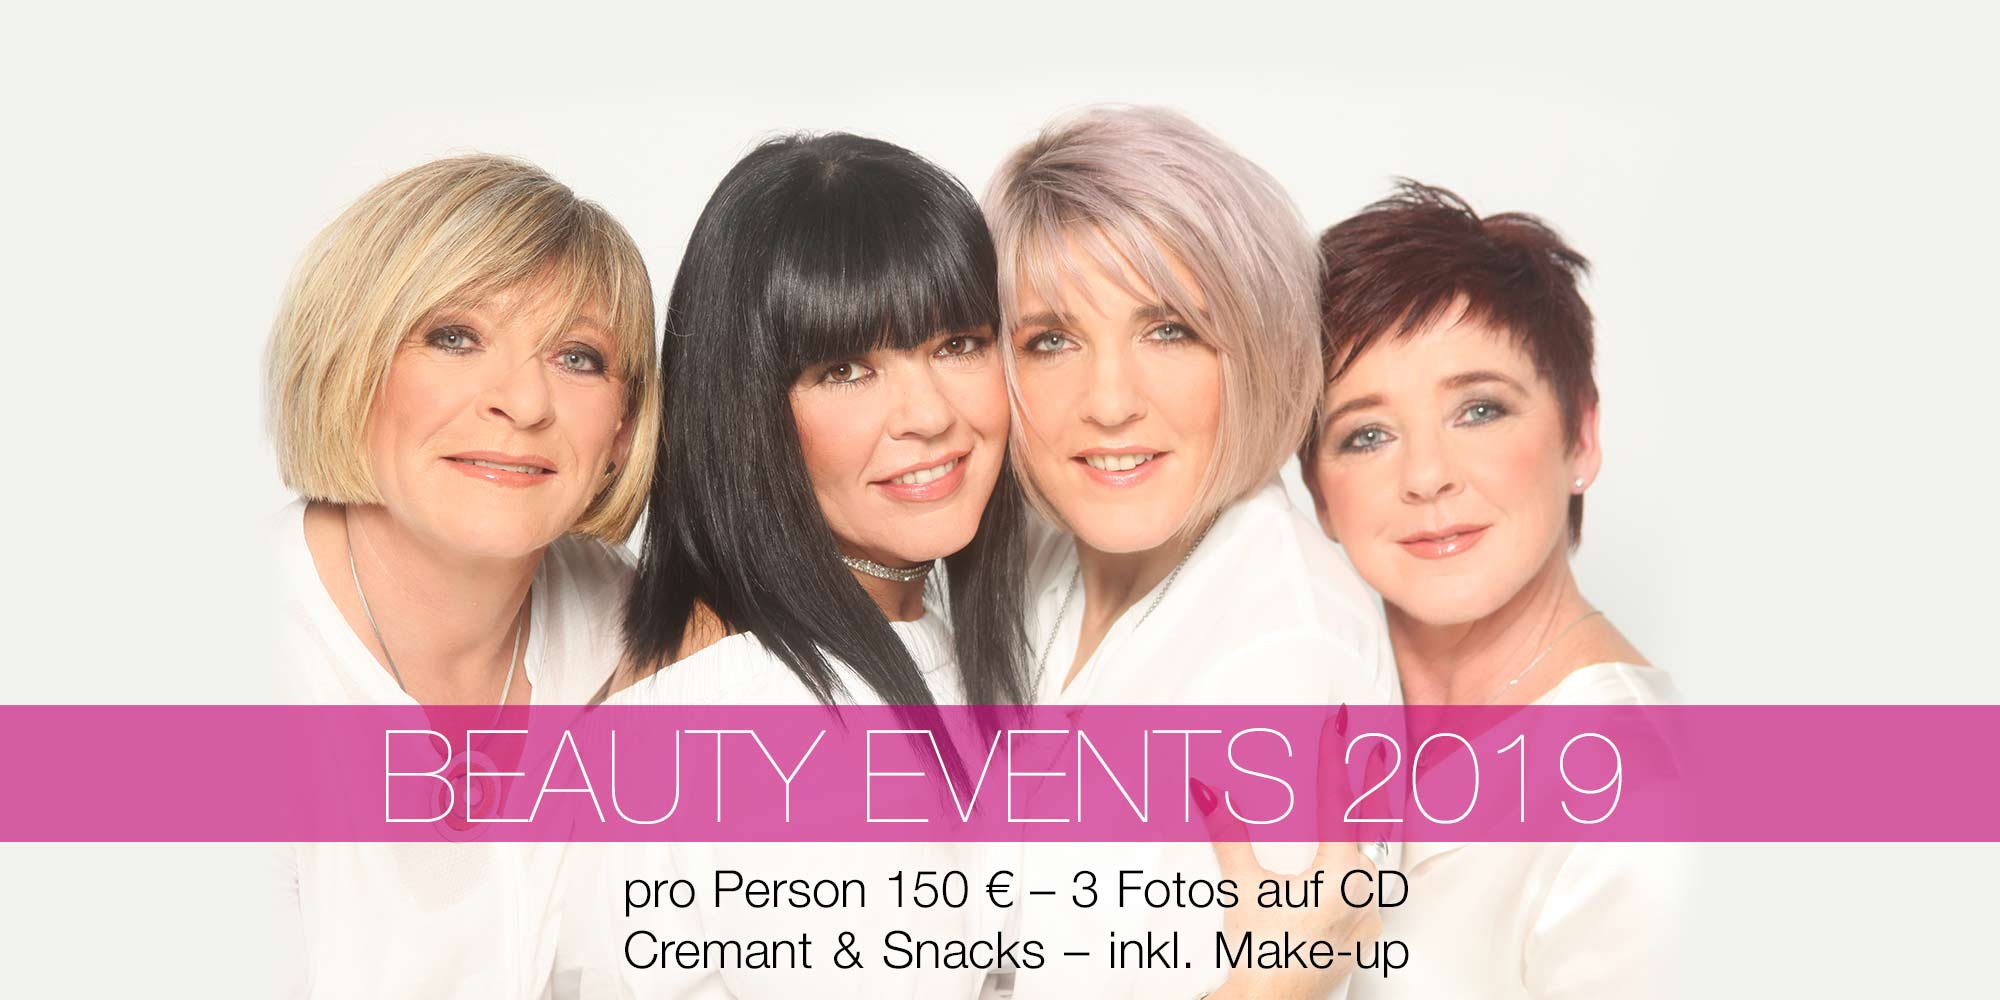 Beauty Events 2019